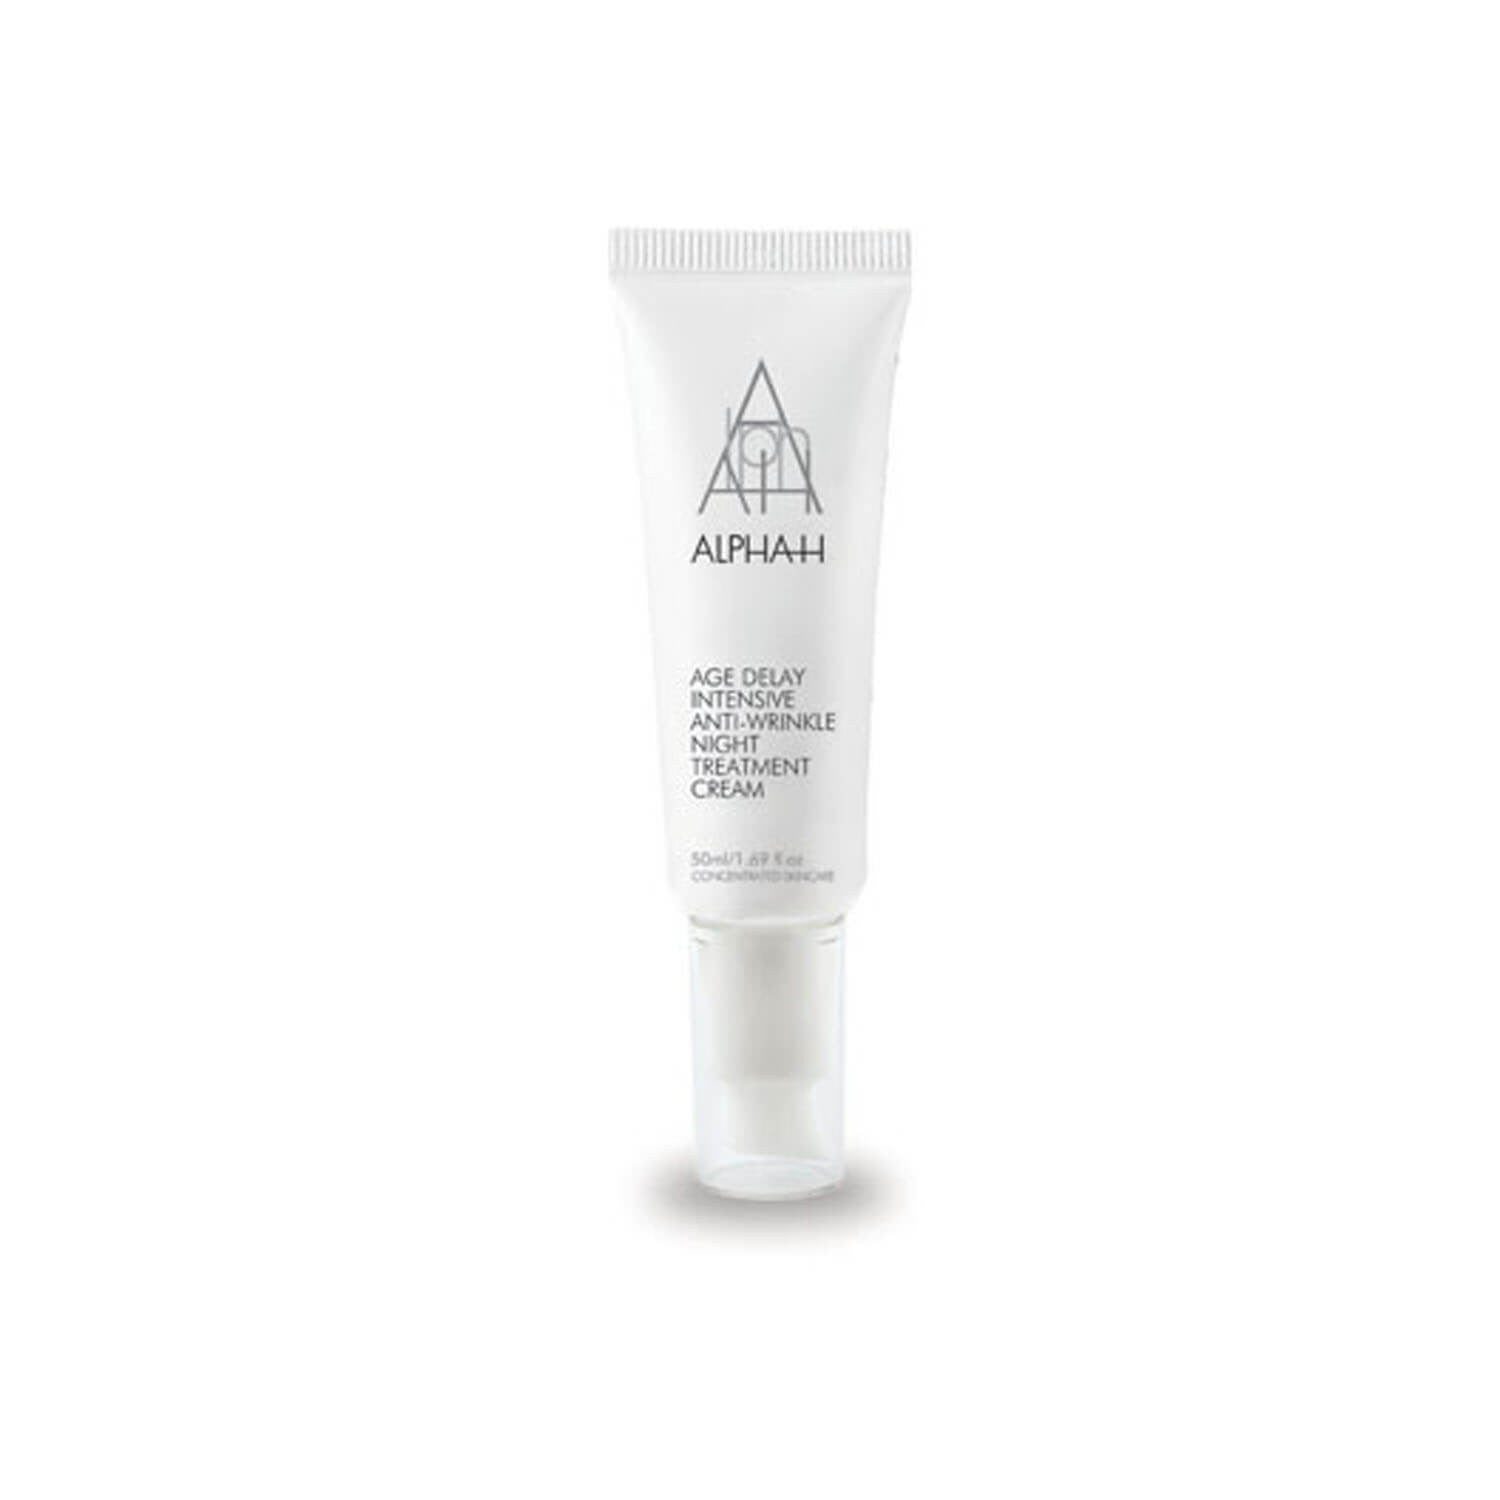 Age Delay Intensive Anti-Wrinkle Night Treatment Cream